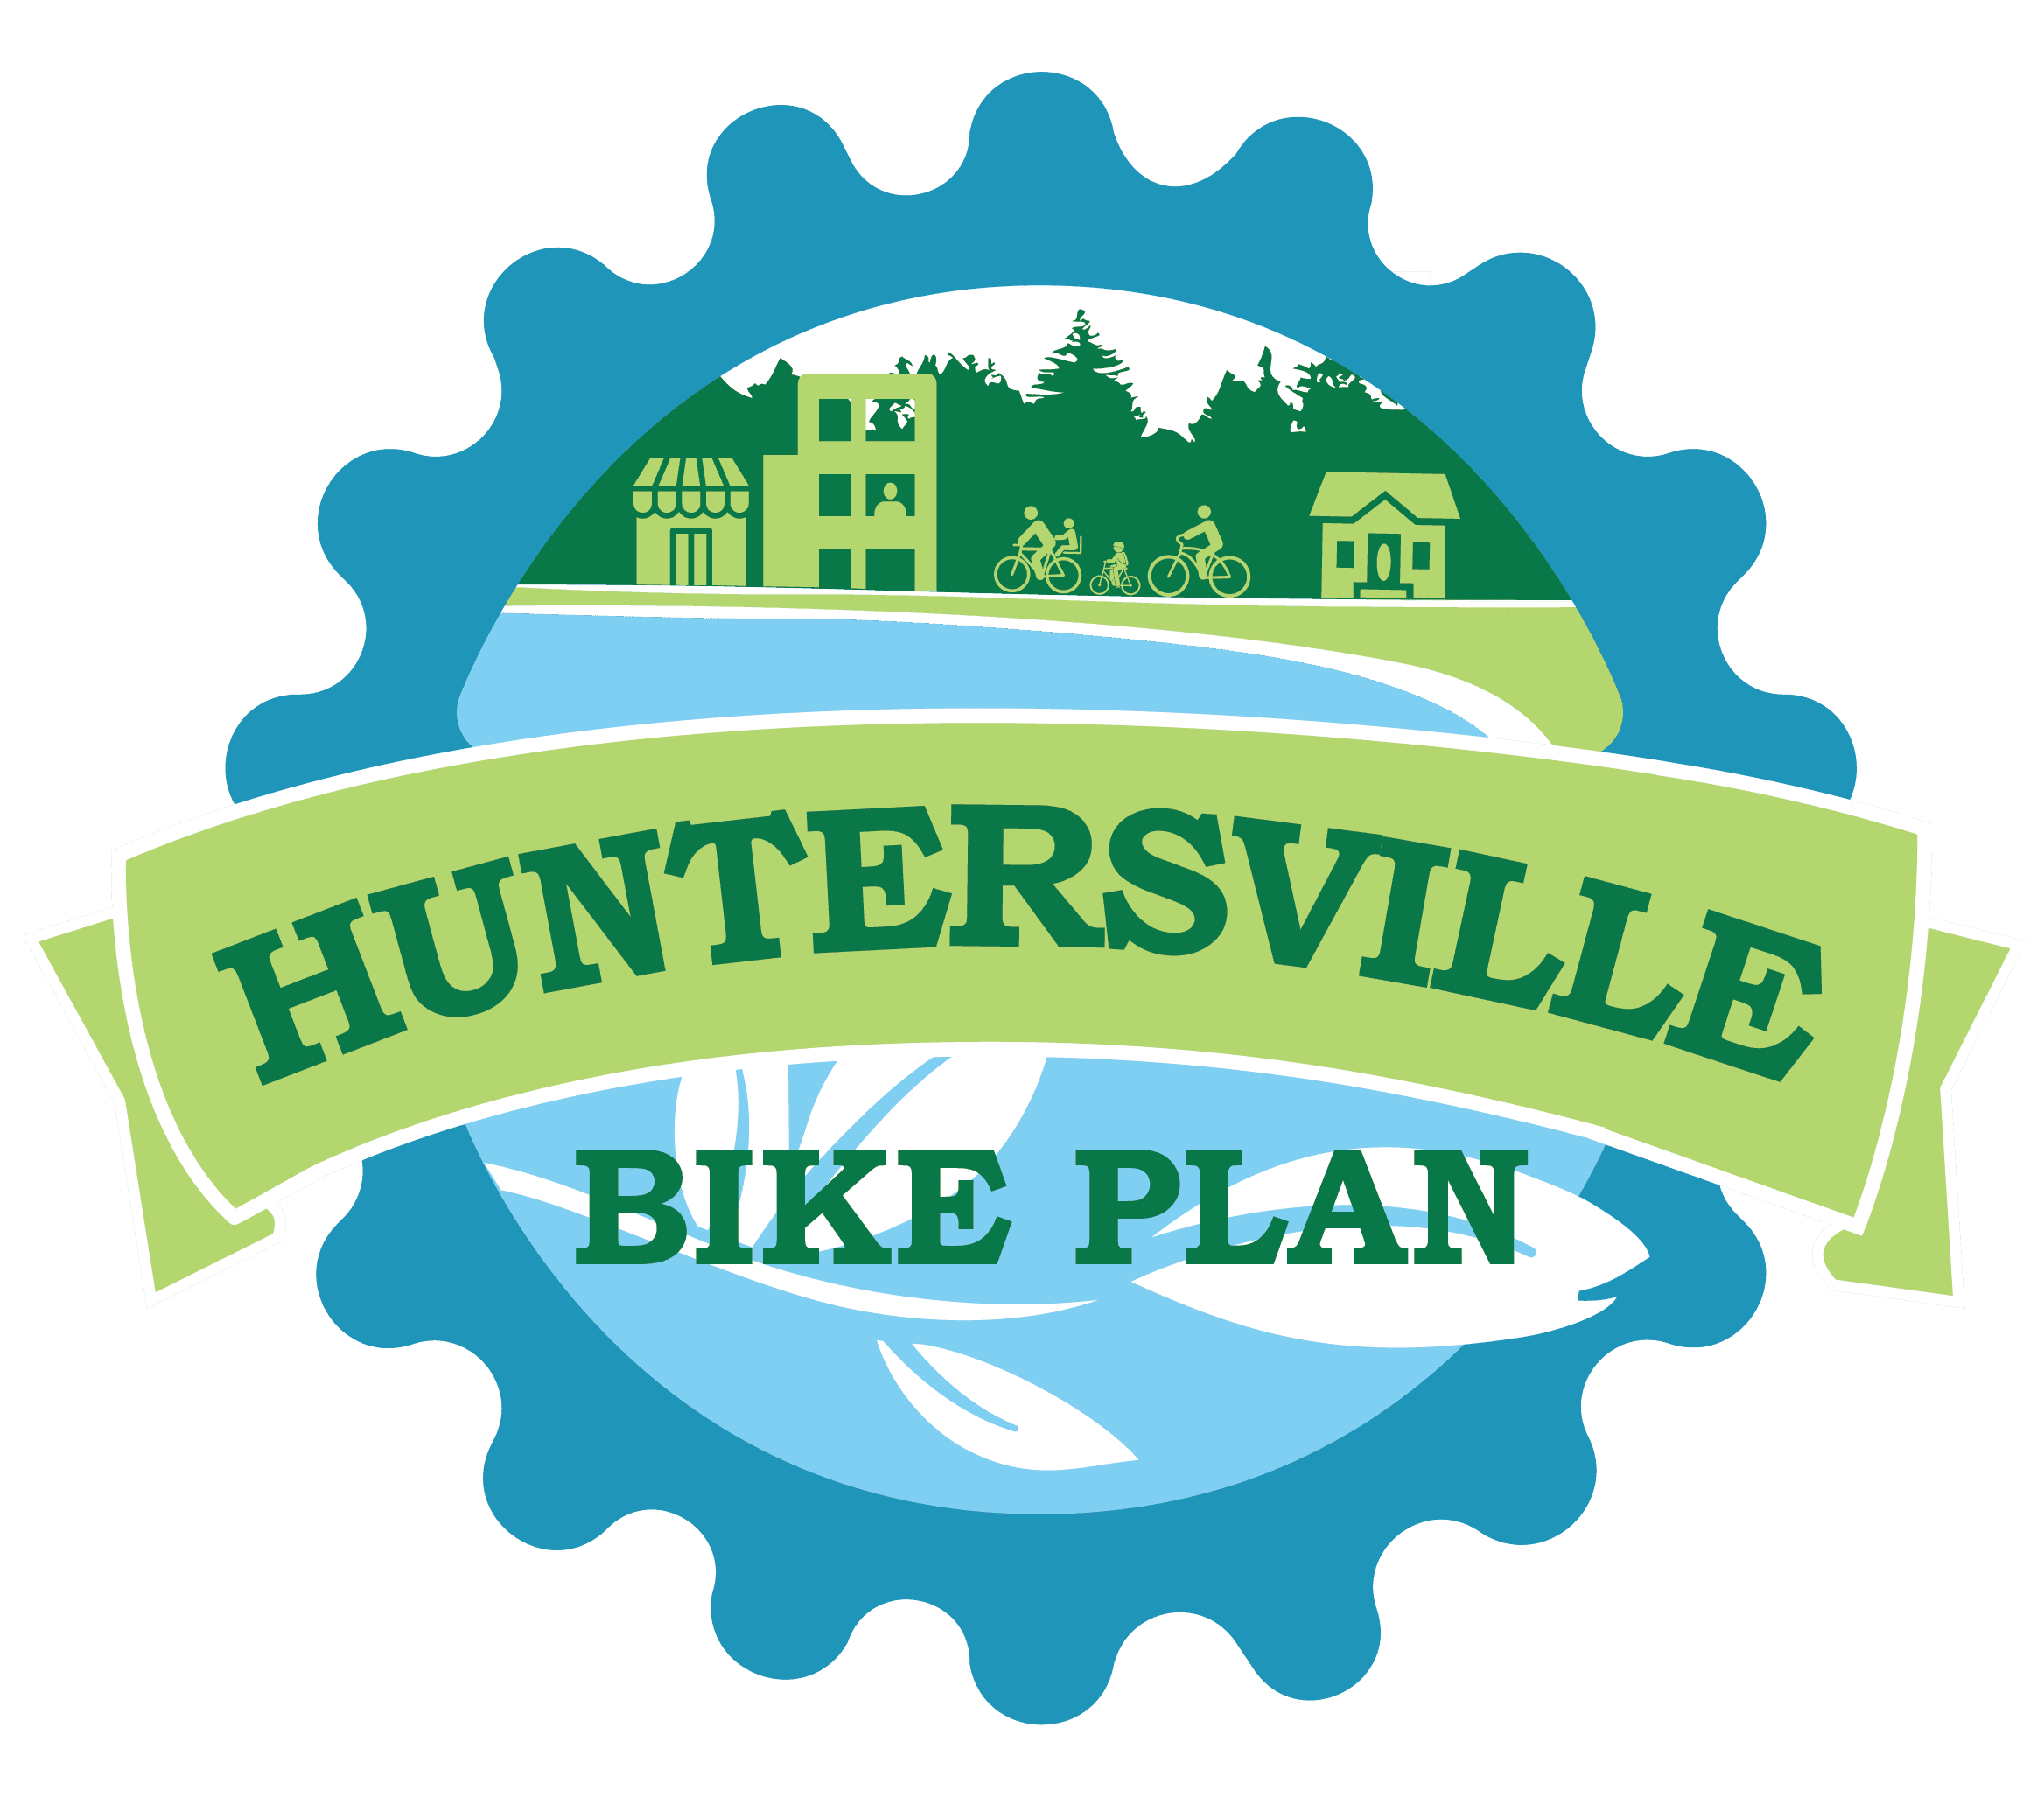 Huntersville Bike Plan Logo Opens in new window